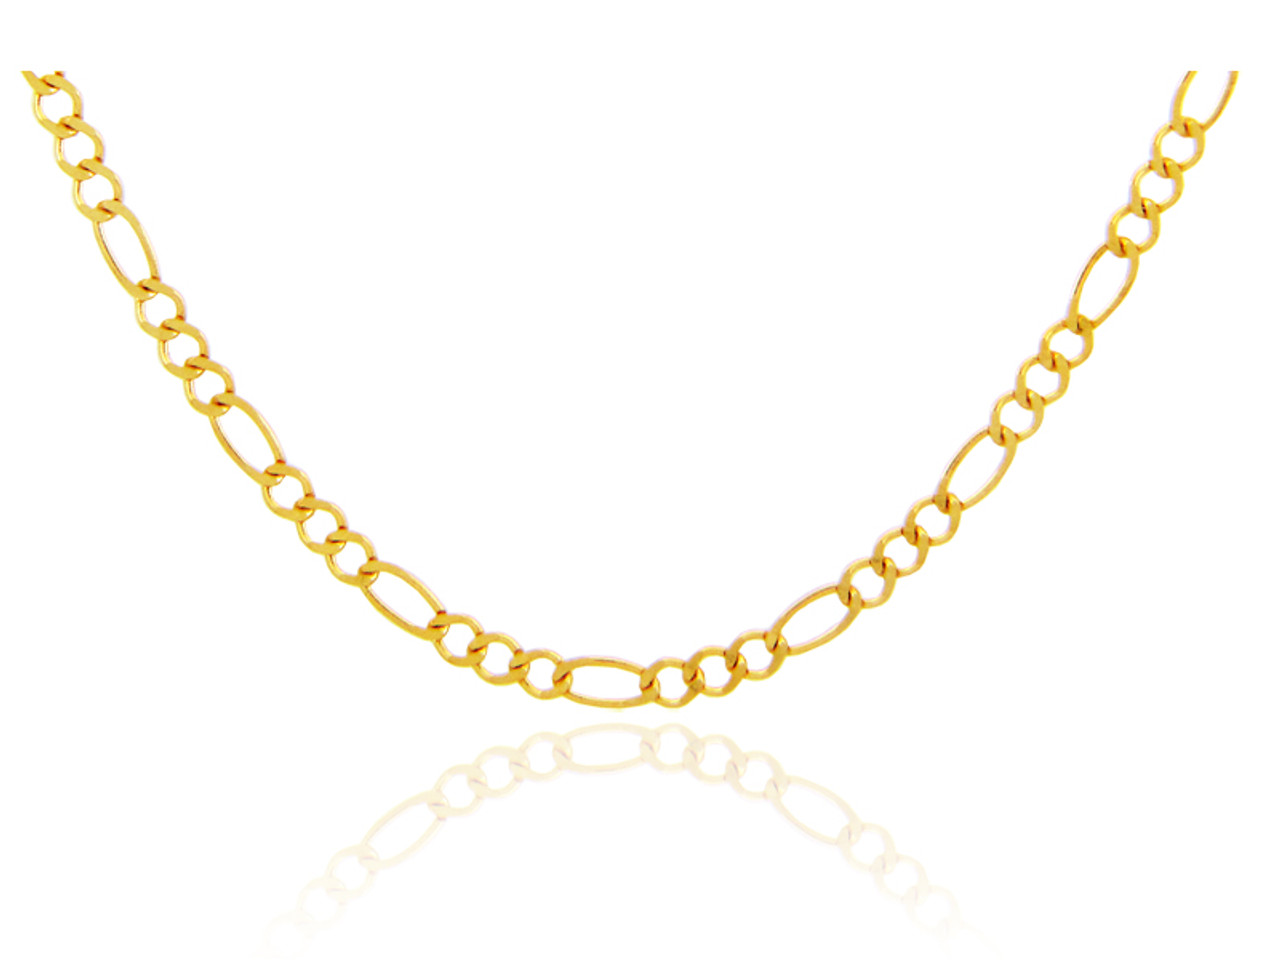 gold lar chain com glod chains online curly caratlane link jewellery india